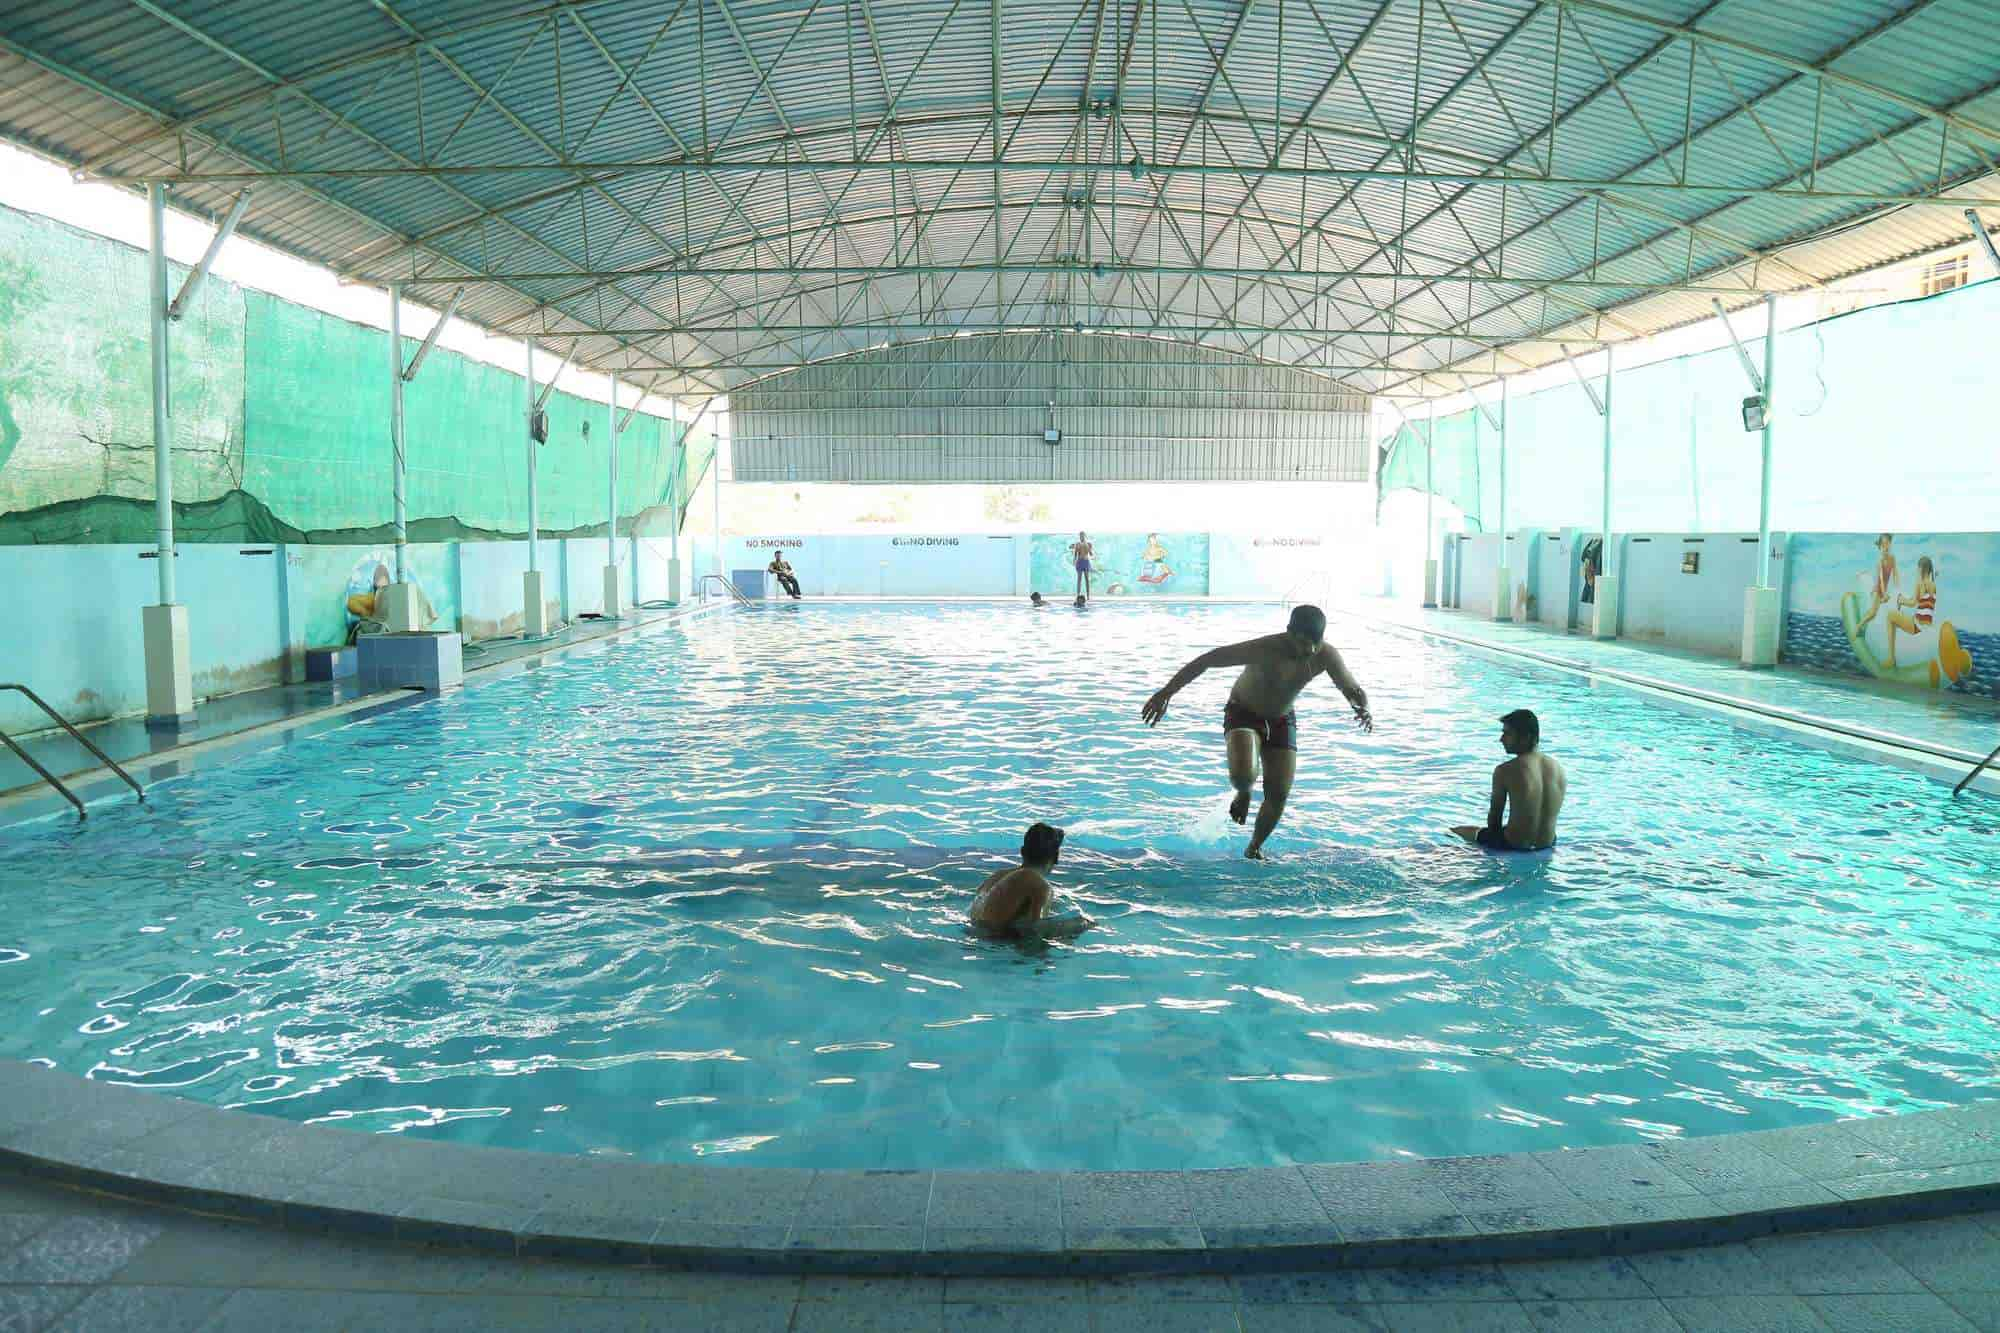 BJ U0026 Sons Indoor Swimming Pool U0026 Fitness Centre